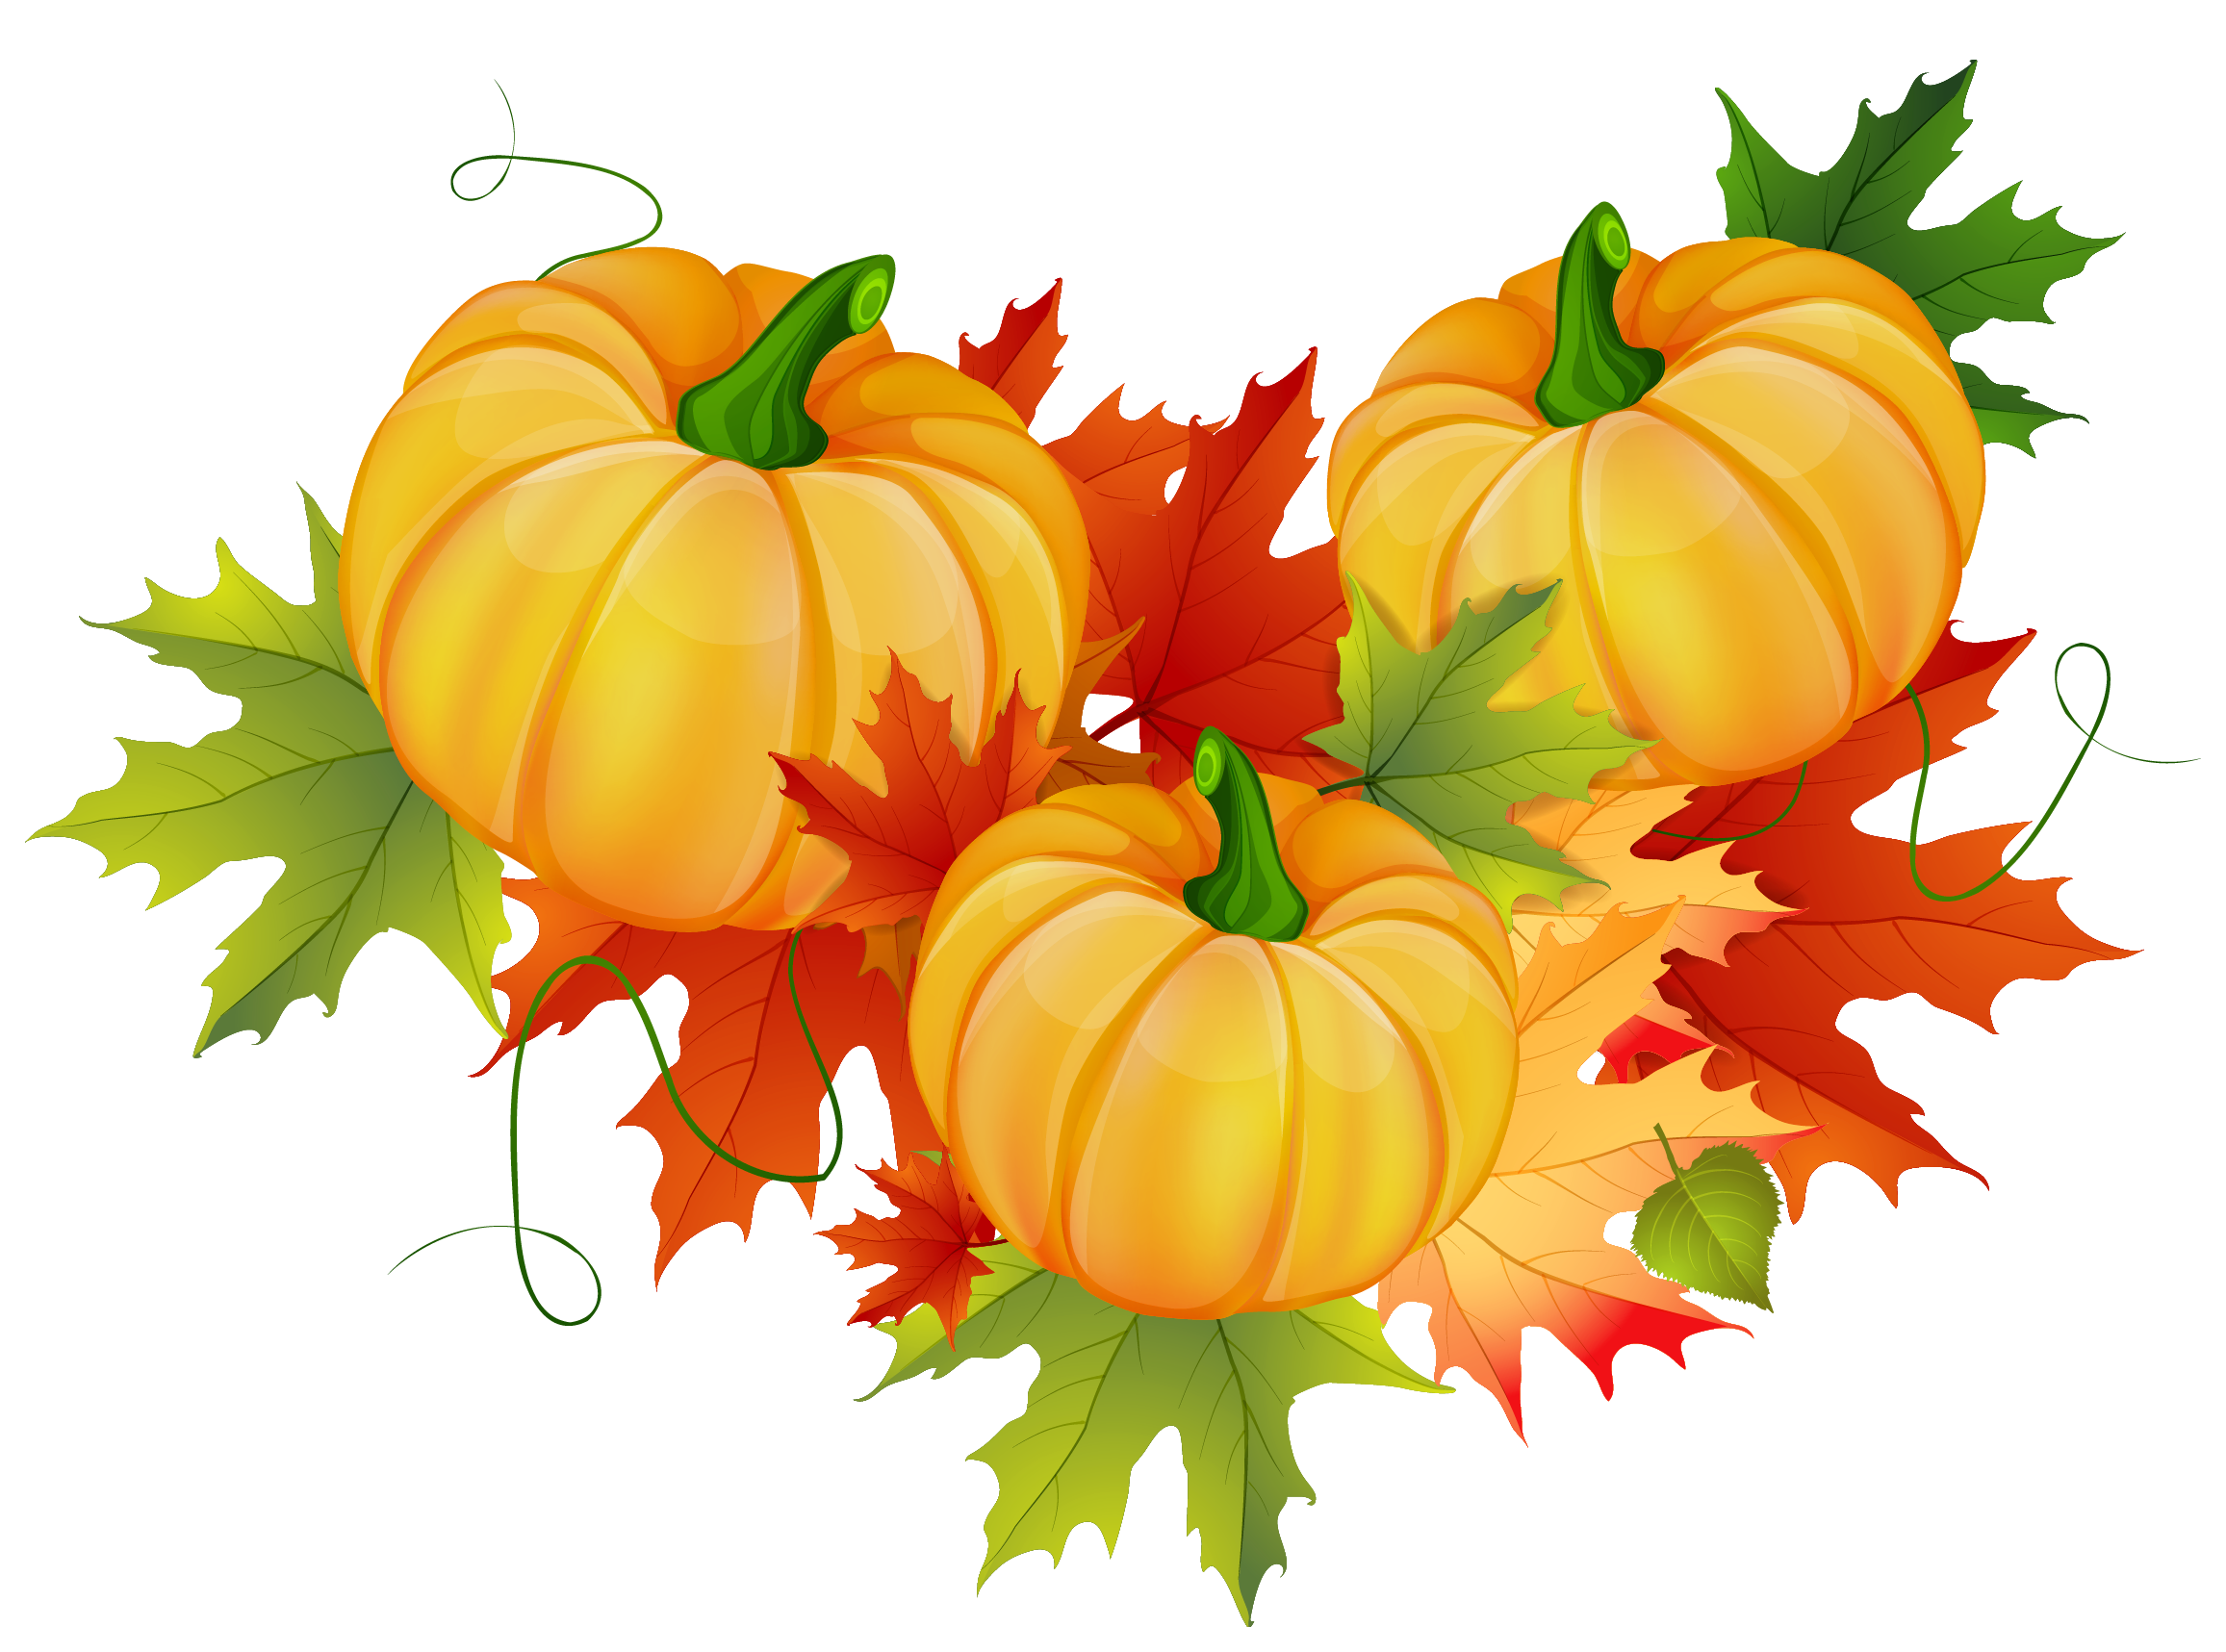 image freeuse download thanksgiving pumpkins clipart #66890657